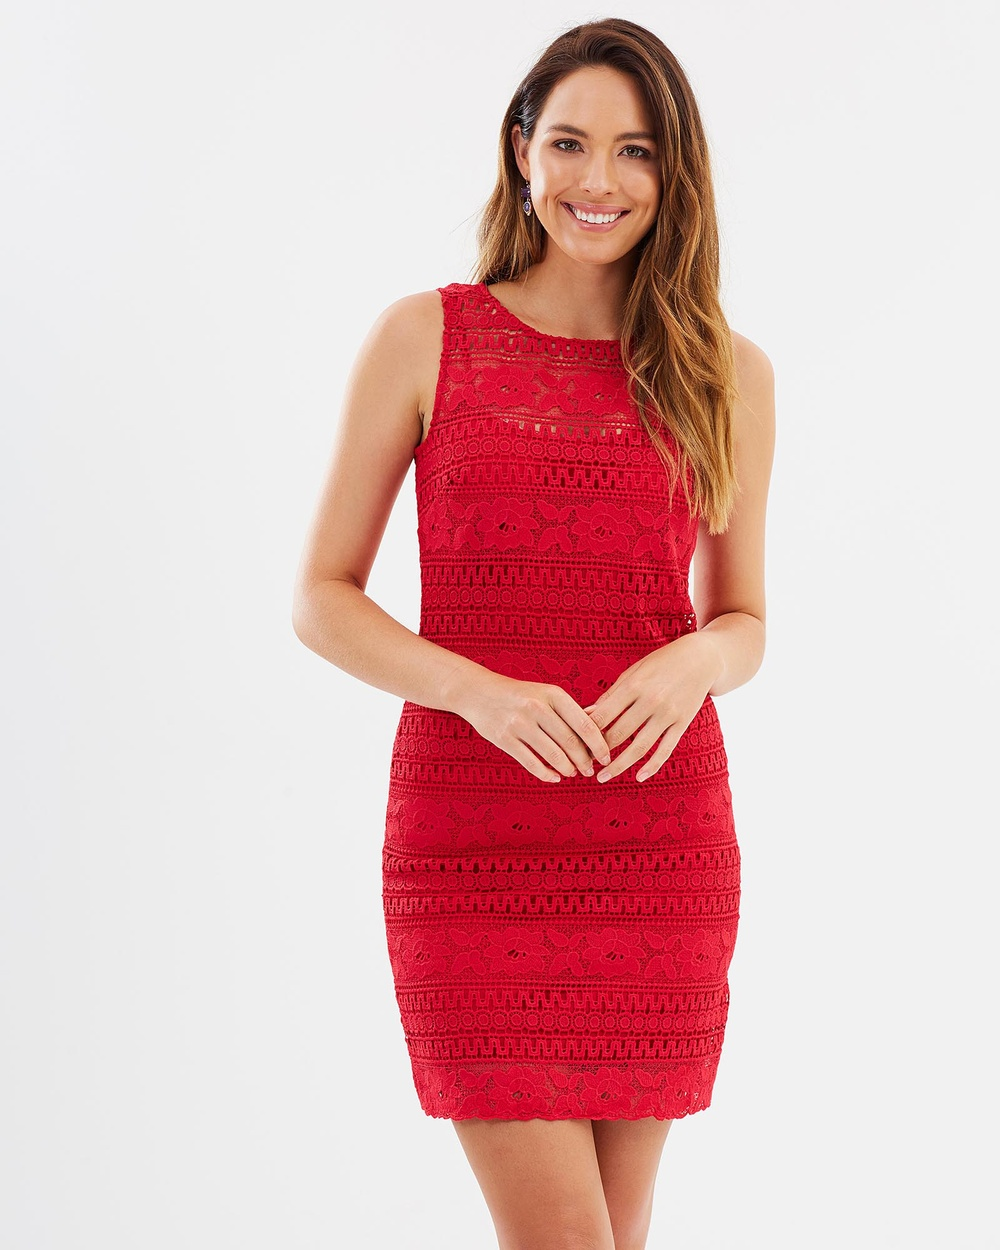 Montique Cindy Lace Shift Dress Dresses Coral Cindy Lace Shift Dress